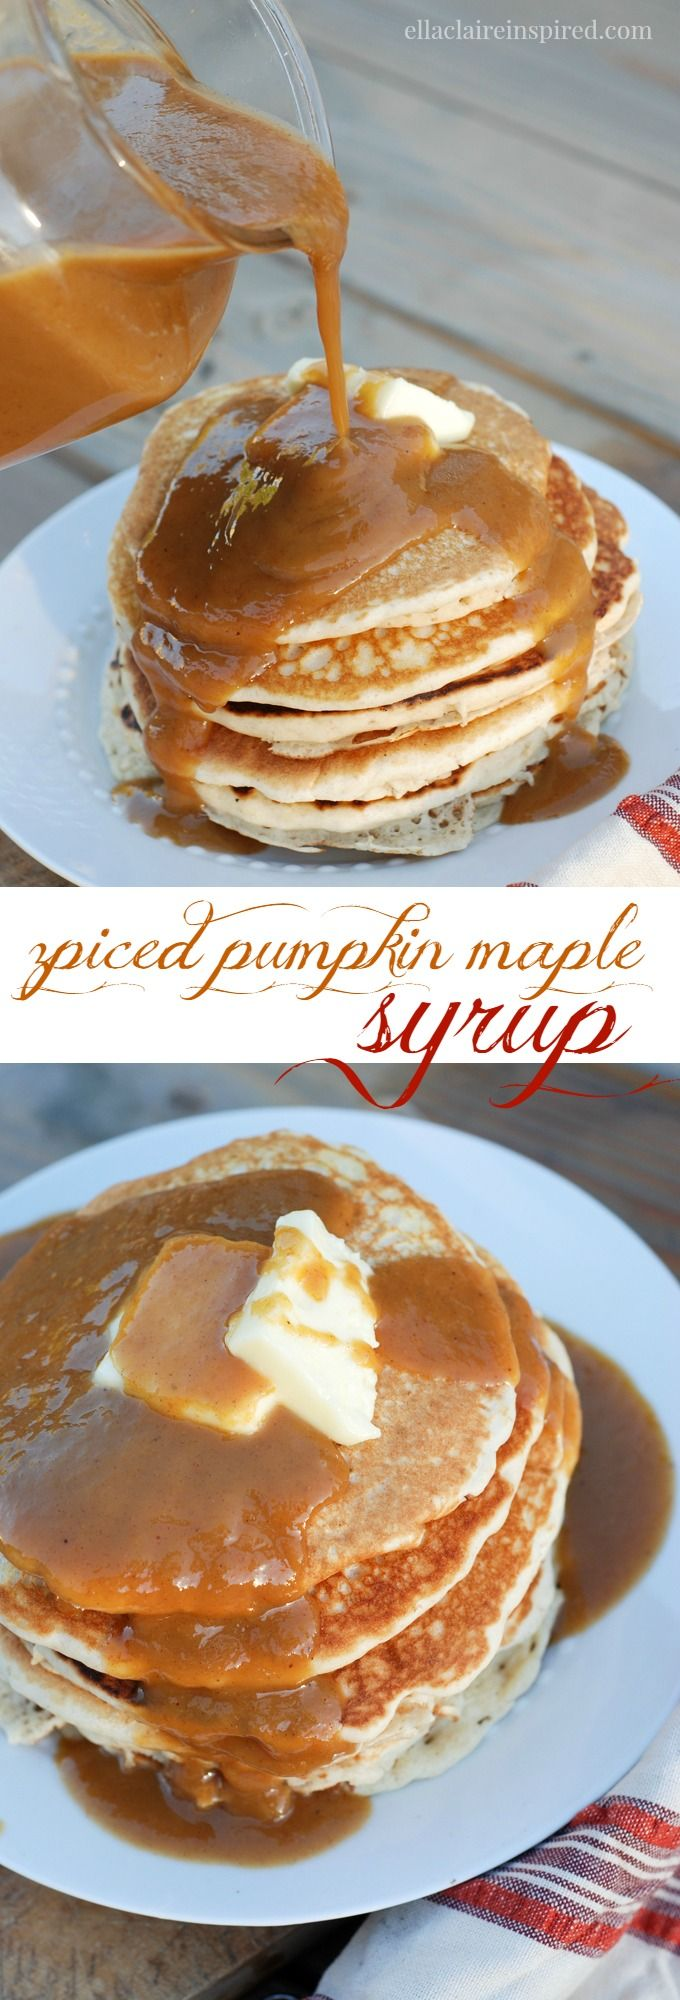 This Spiced Pumpkin Maple Syrup is breakfast heaven! It is so easy to ...